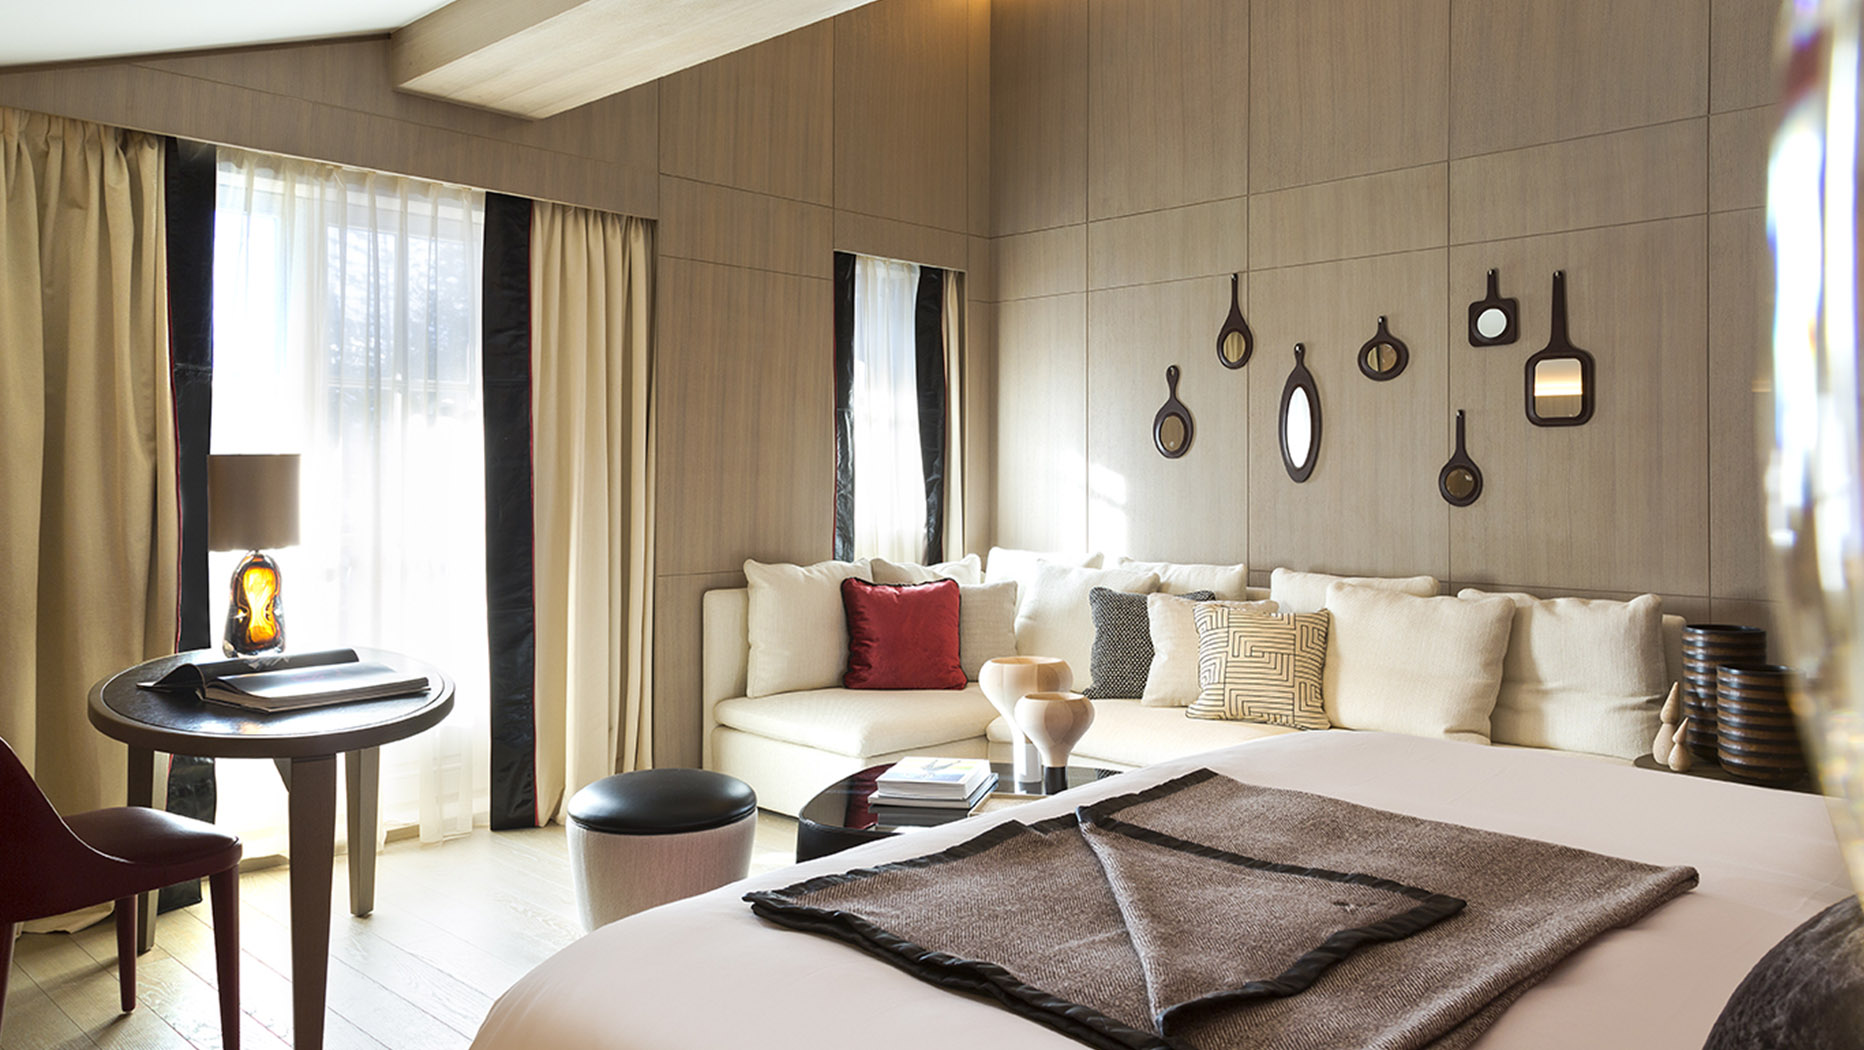 Suites, Cheval Blanc, Courchevel 1850, France